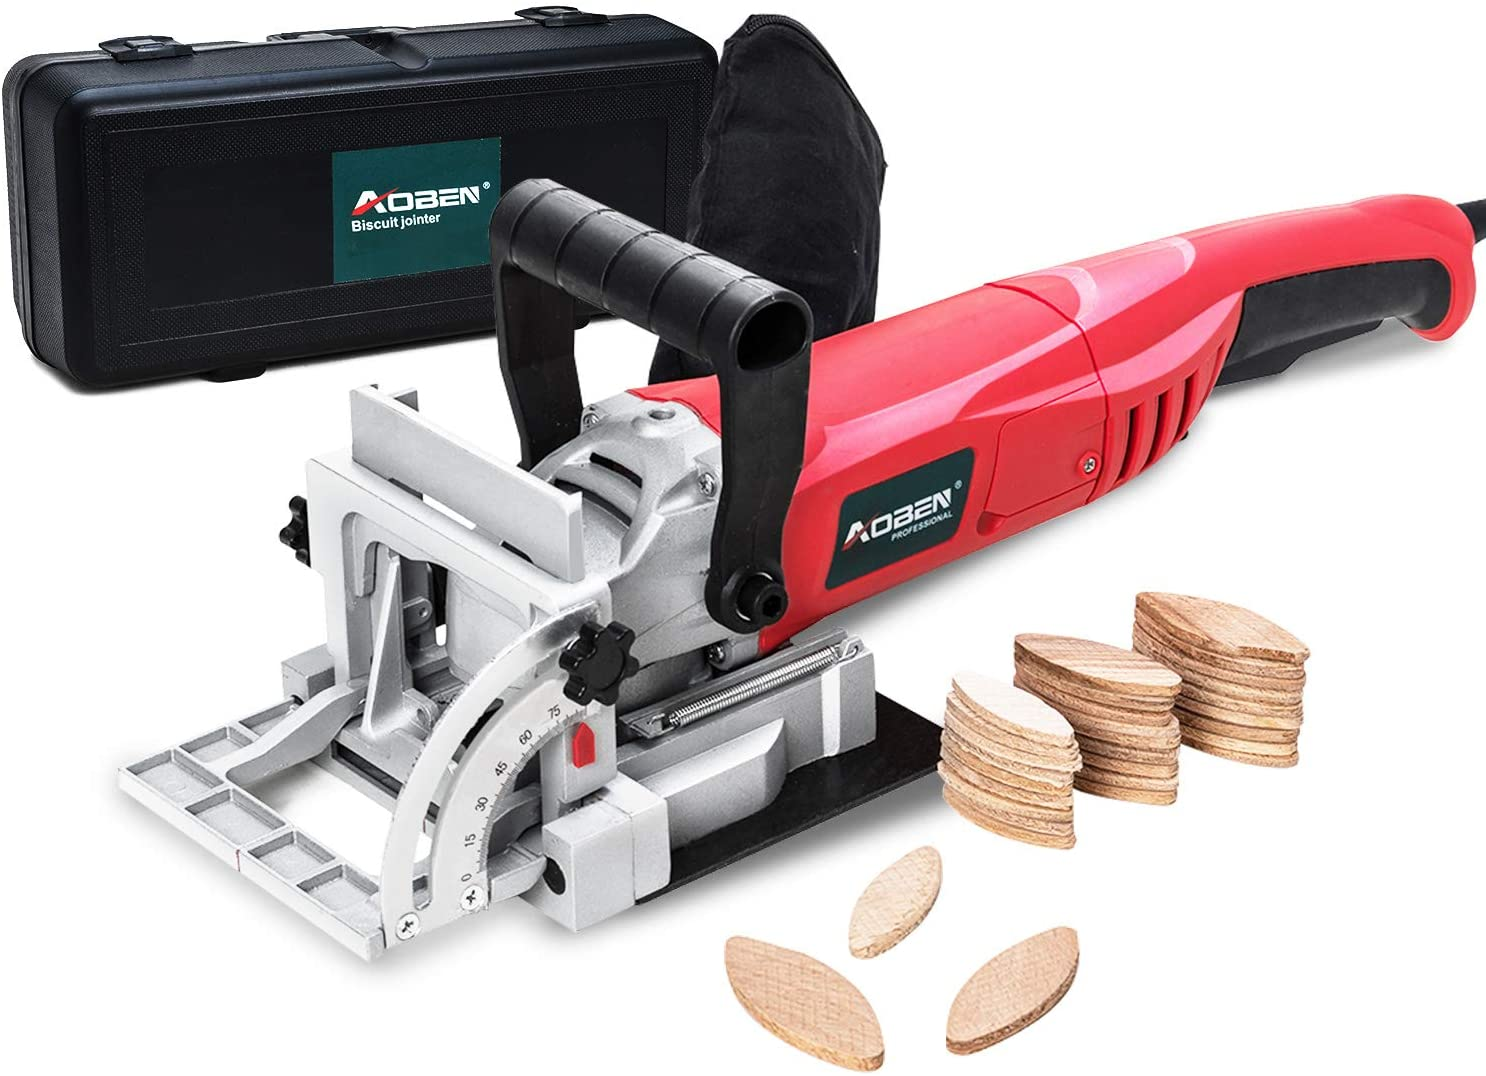 AOBEN 8.5 Amp Biscuit Cutter Plate Joiner With Tipped Blade